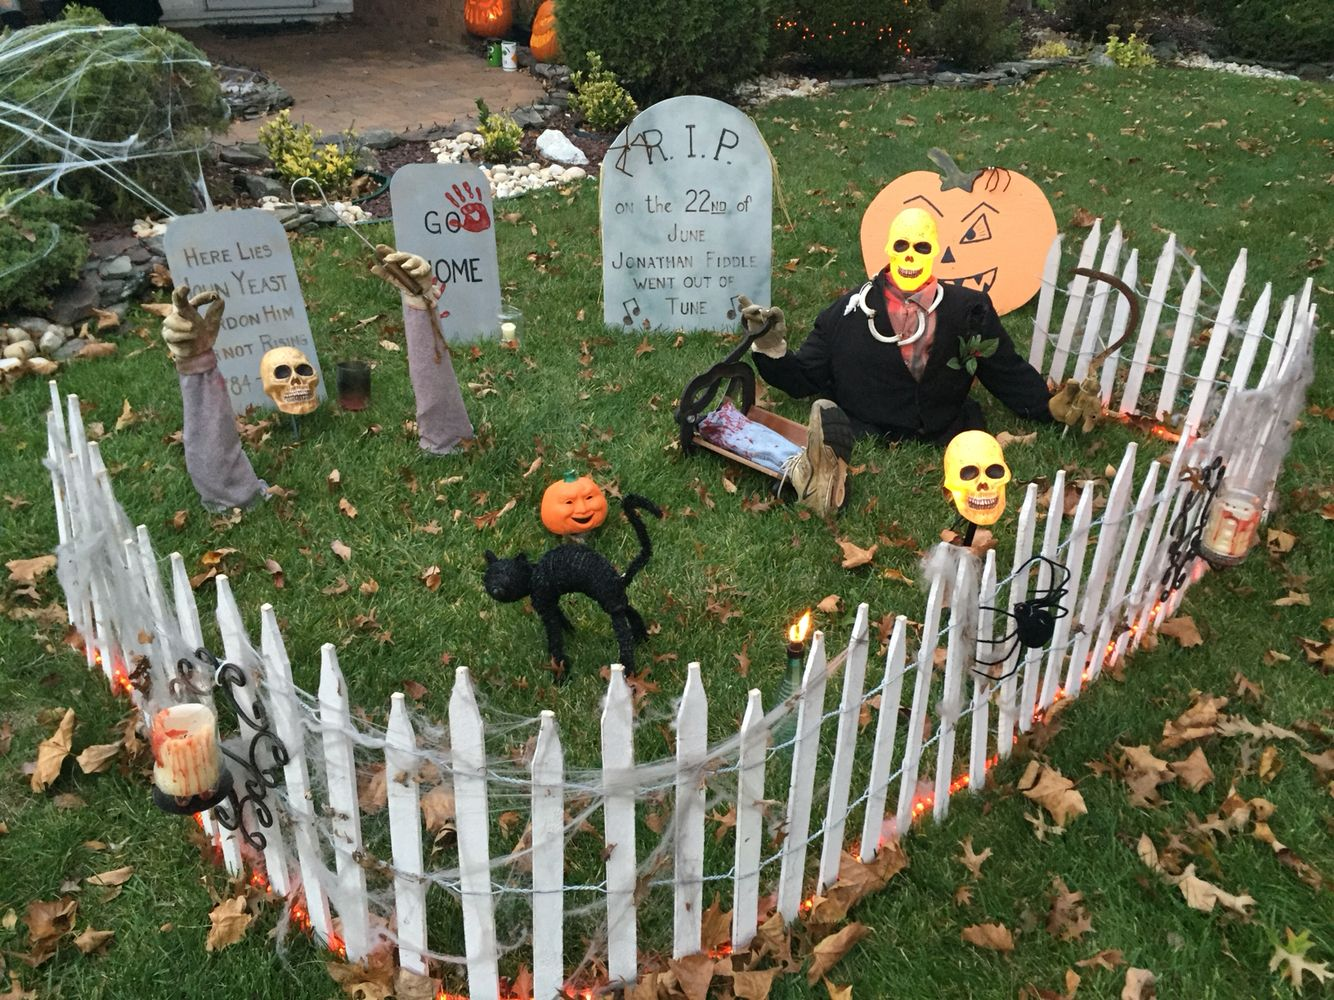 Halloween graveyard set up Halloween Decor Pinterest - Halloween Graveyard Decorations